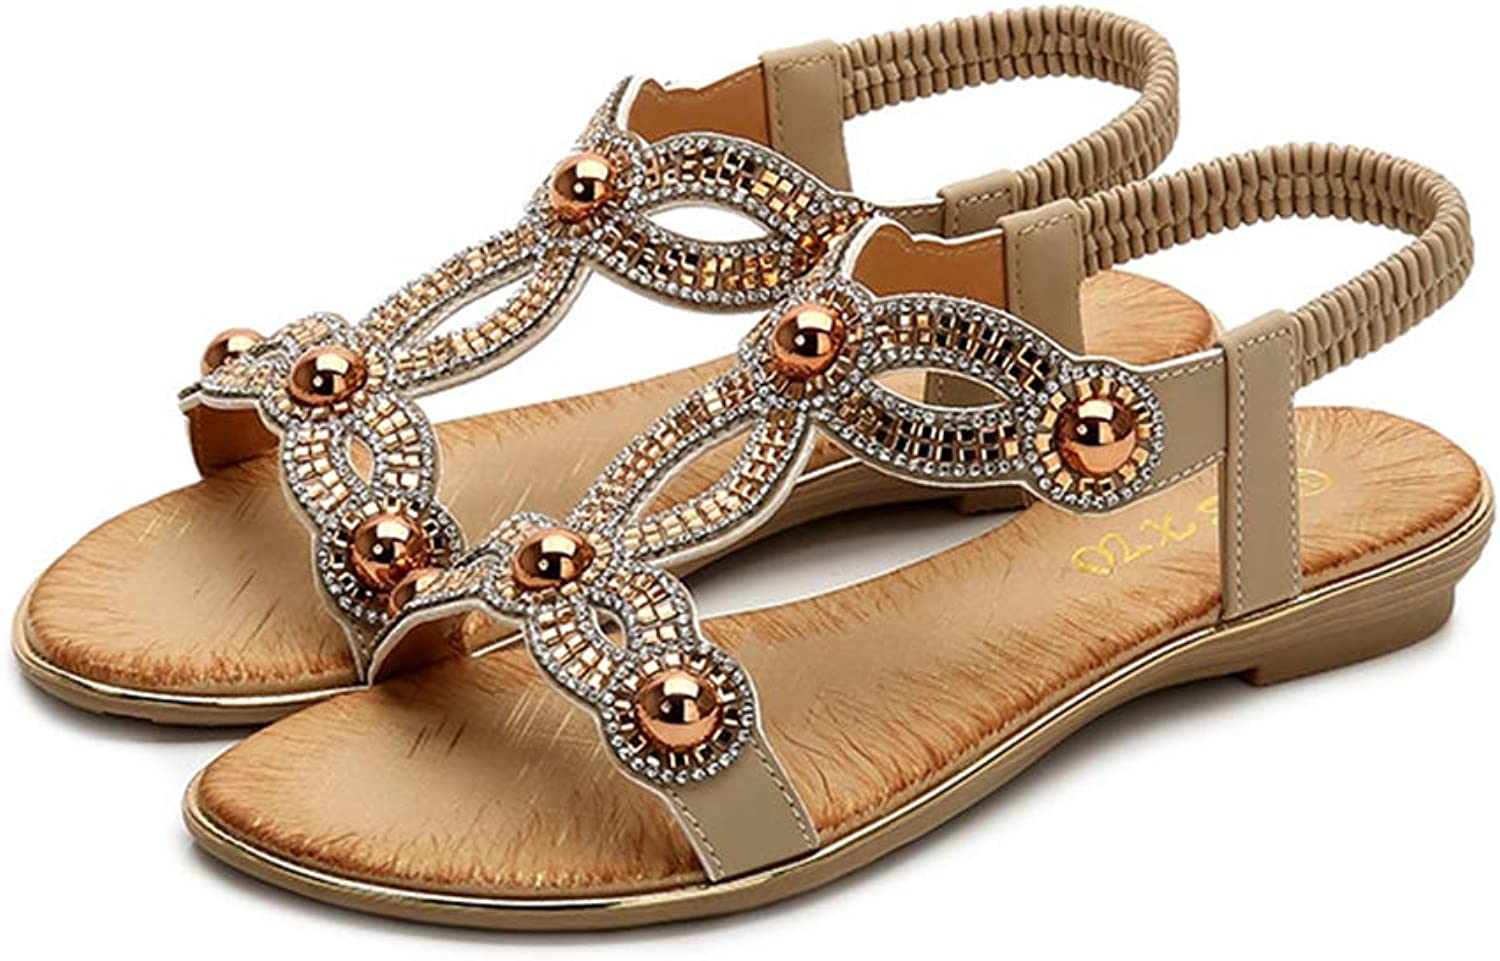 Tuoup Women's Flat Leather Bling Beaded Sandles Beach Sandals